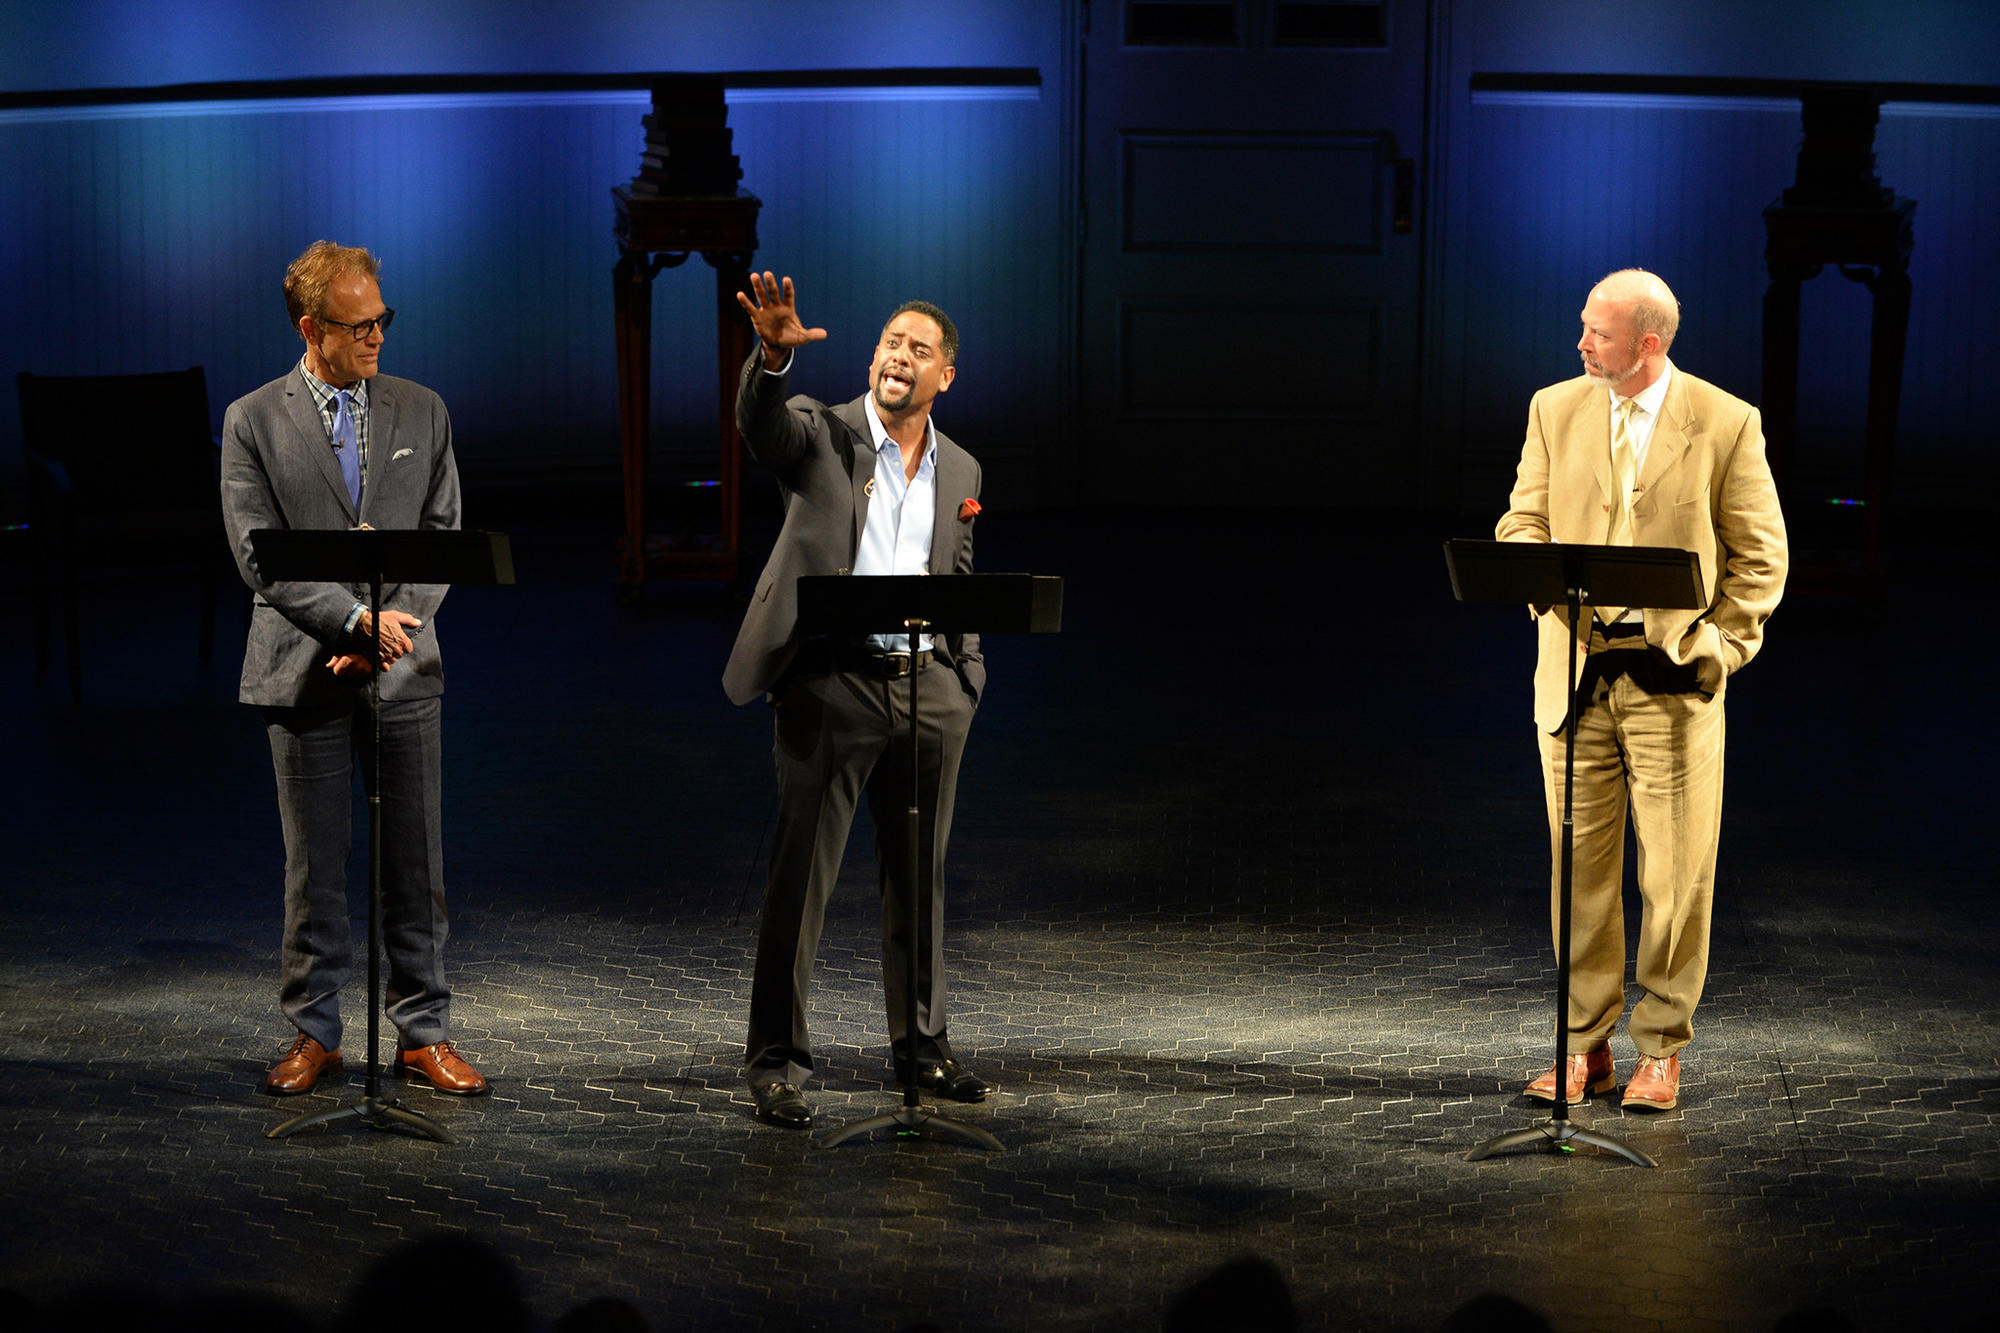 Blair Underwood (flanked by Mark Pinter, left, and Mike Sears) was among luminaries to perform at the Old Globe in San Diego in conjunction with the exhibition of Shakespeare's First Folio.